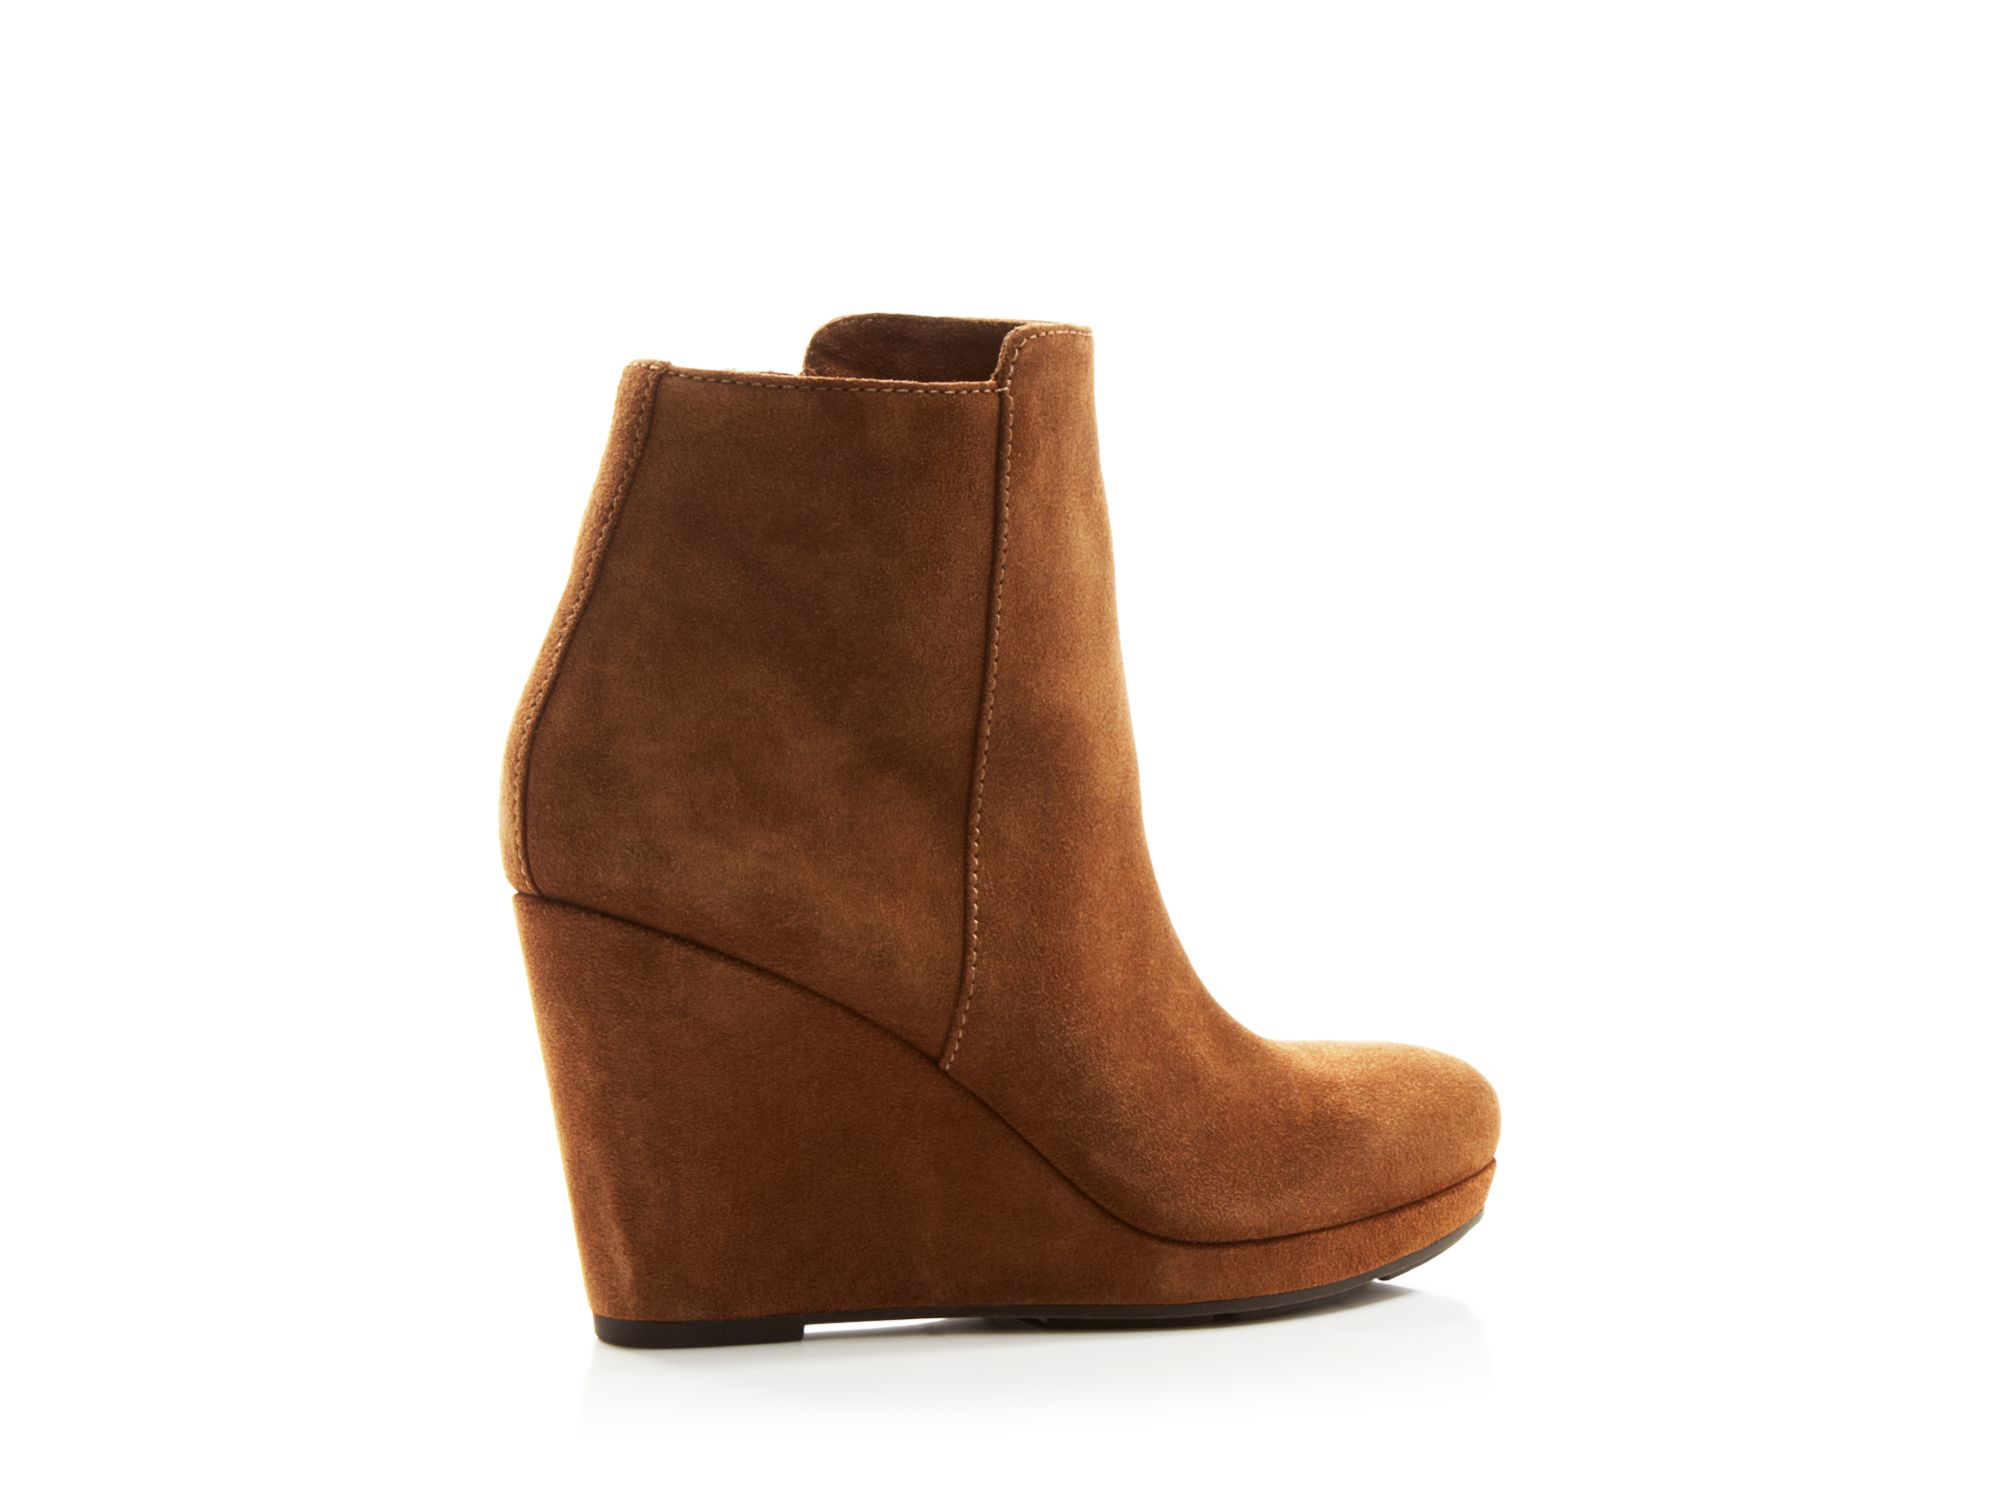 via spiga darina suede wedge boots in brown rattan lyst